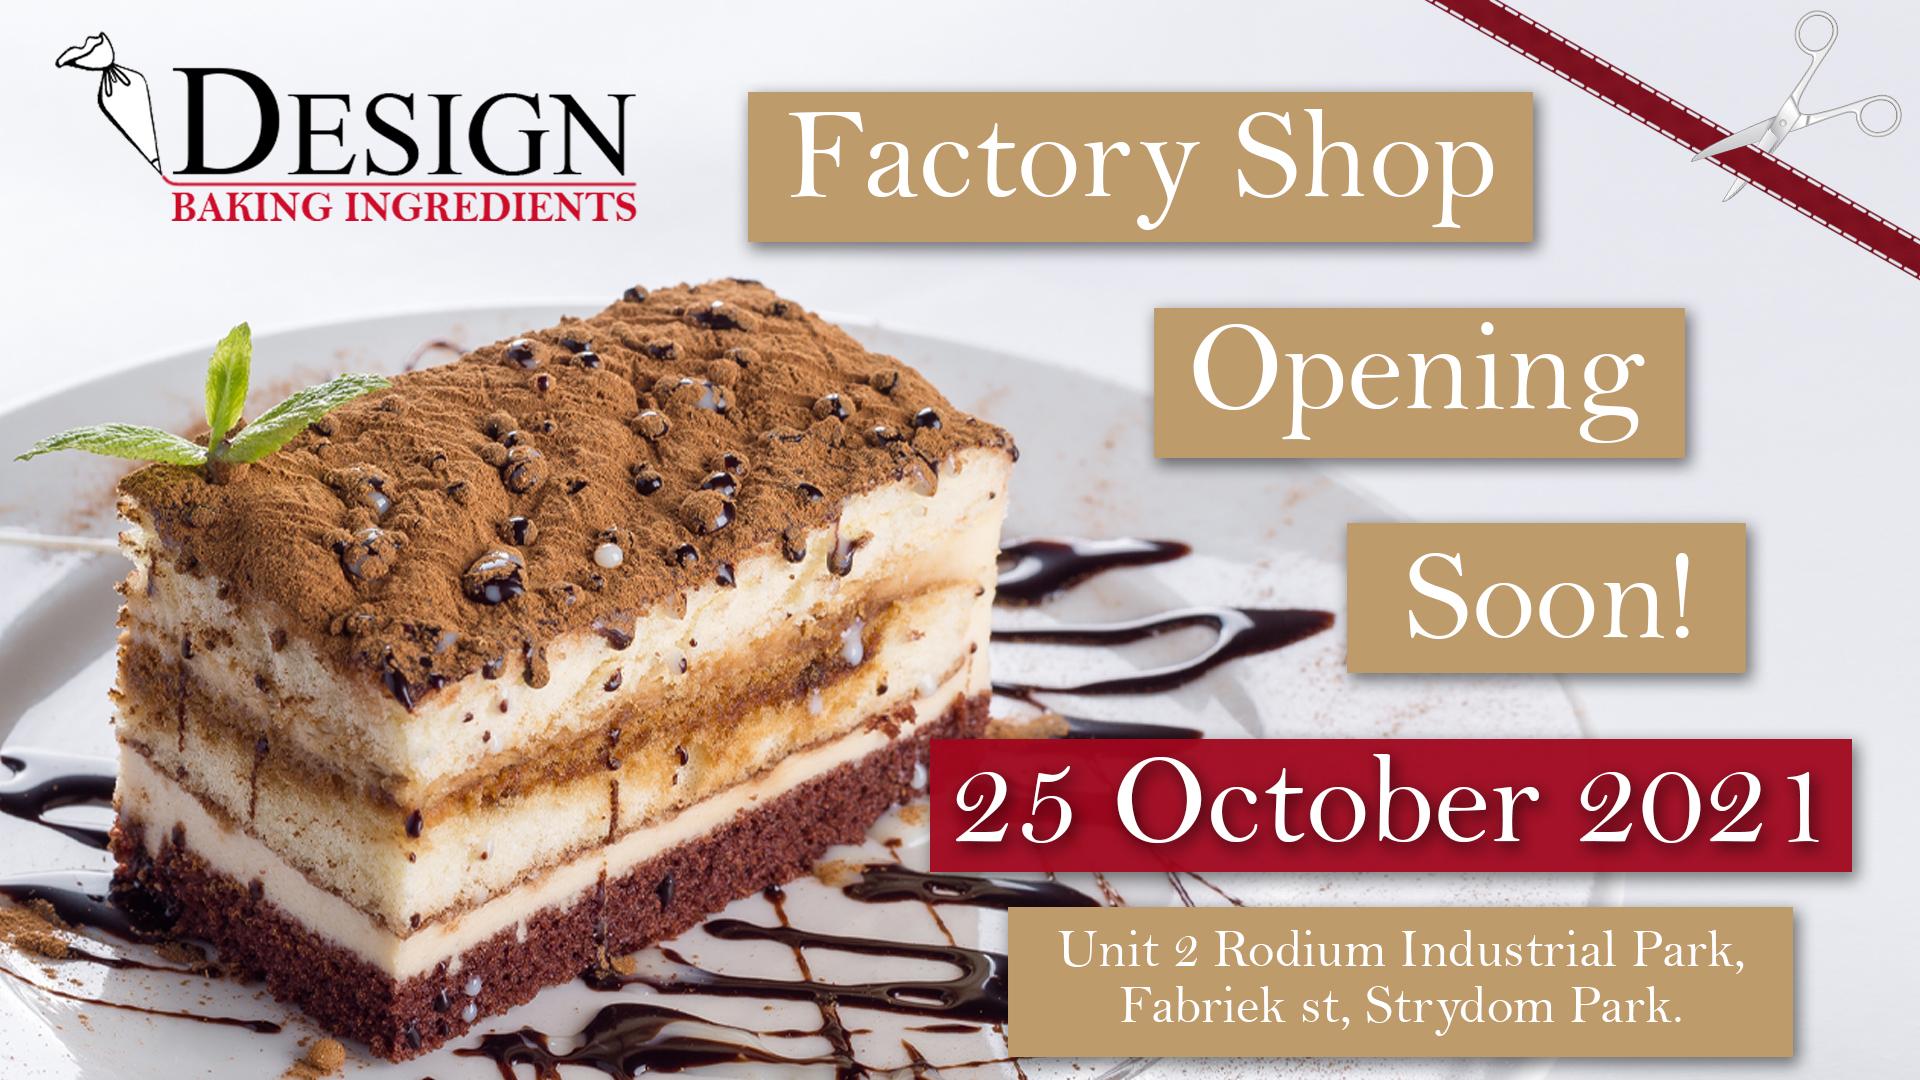 Factory Shop Opening 25 October 2021